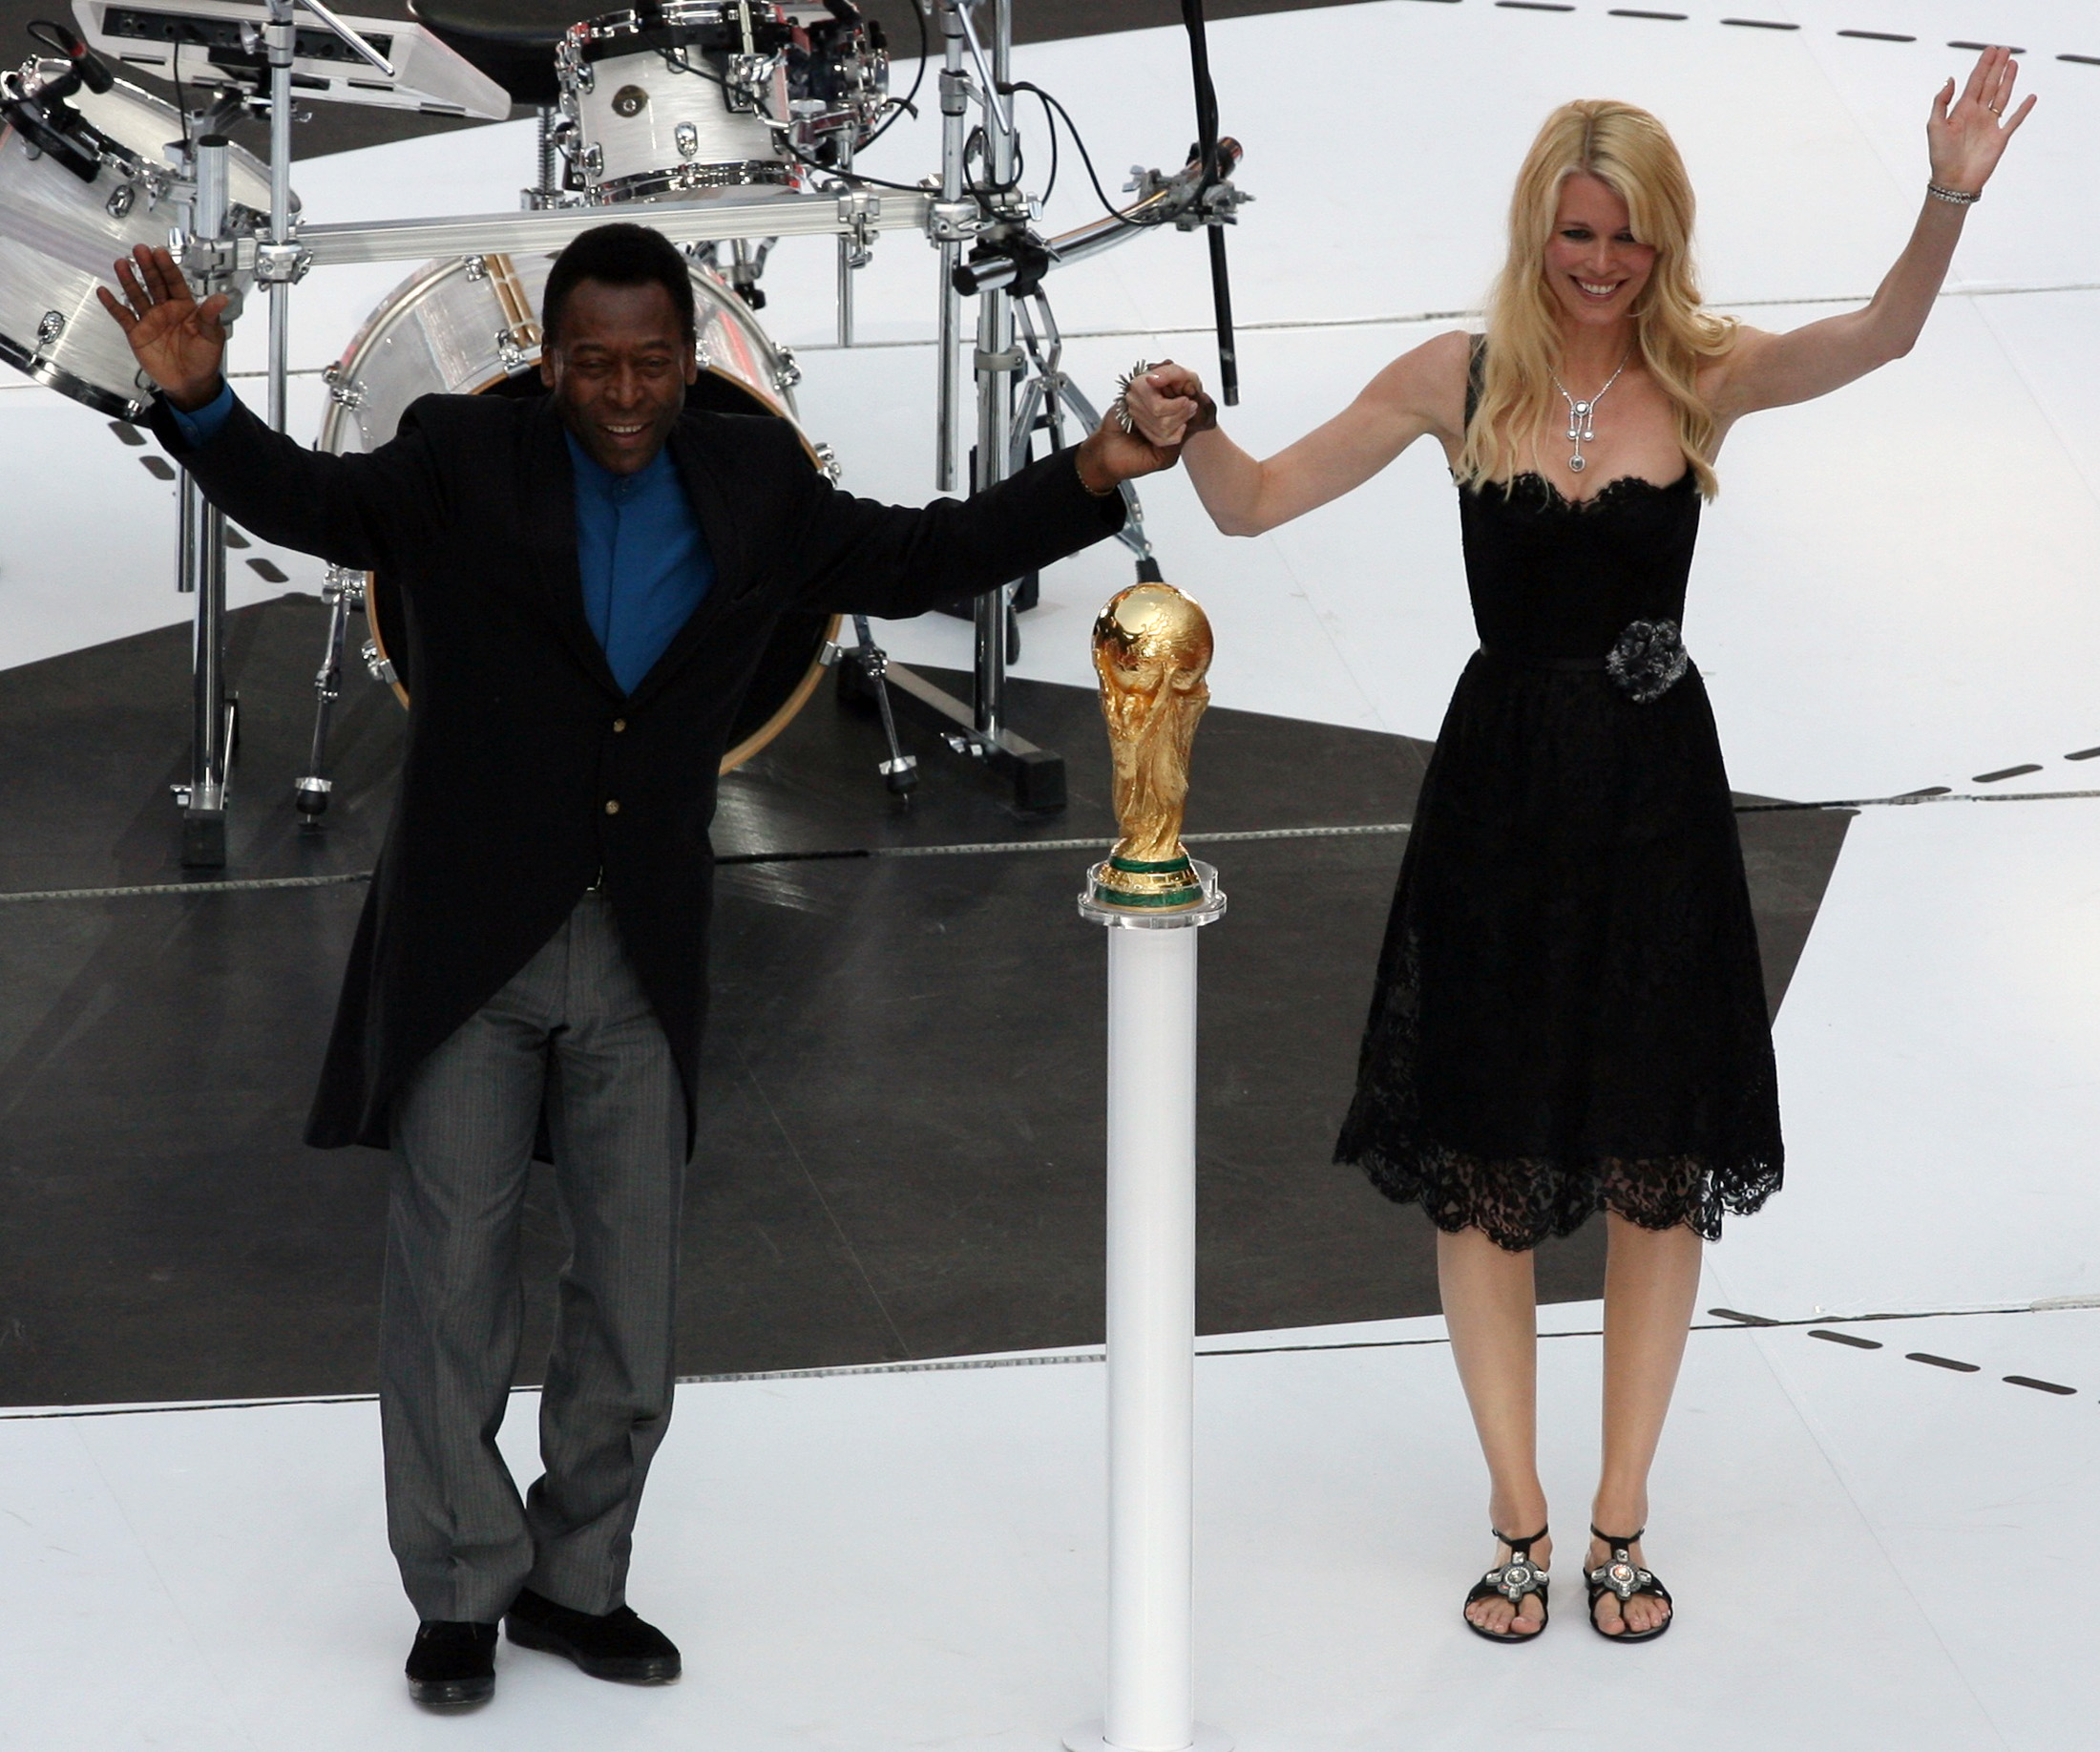 Brazilian soccer legend and member of the 1958, 1962 and 1970 World Cup-winning Brazilian soccer teams Pele holds the hand of German model Claudia Schiffer while standing behind the World Cup Trophy during the World Cup 2006 opening ceremony